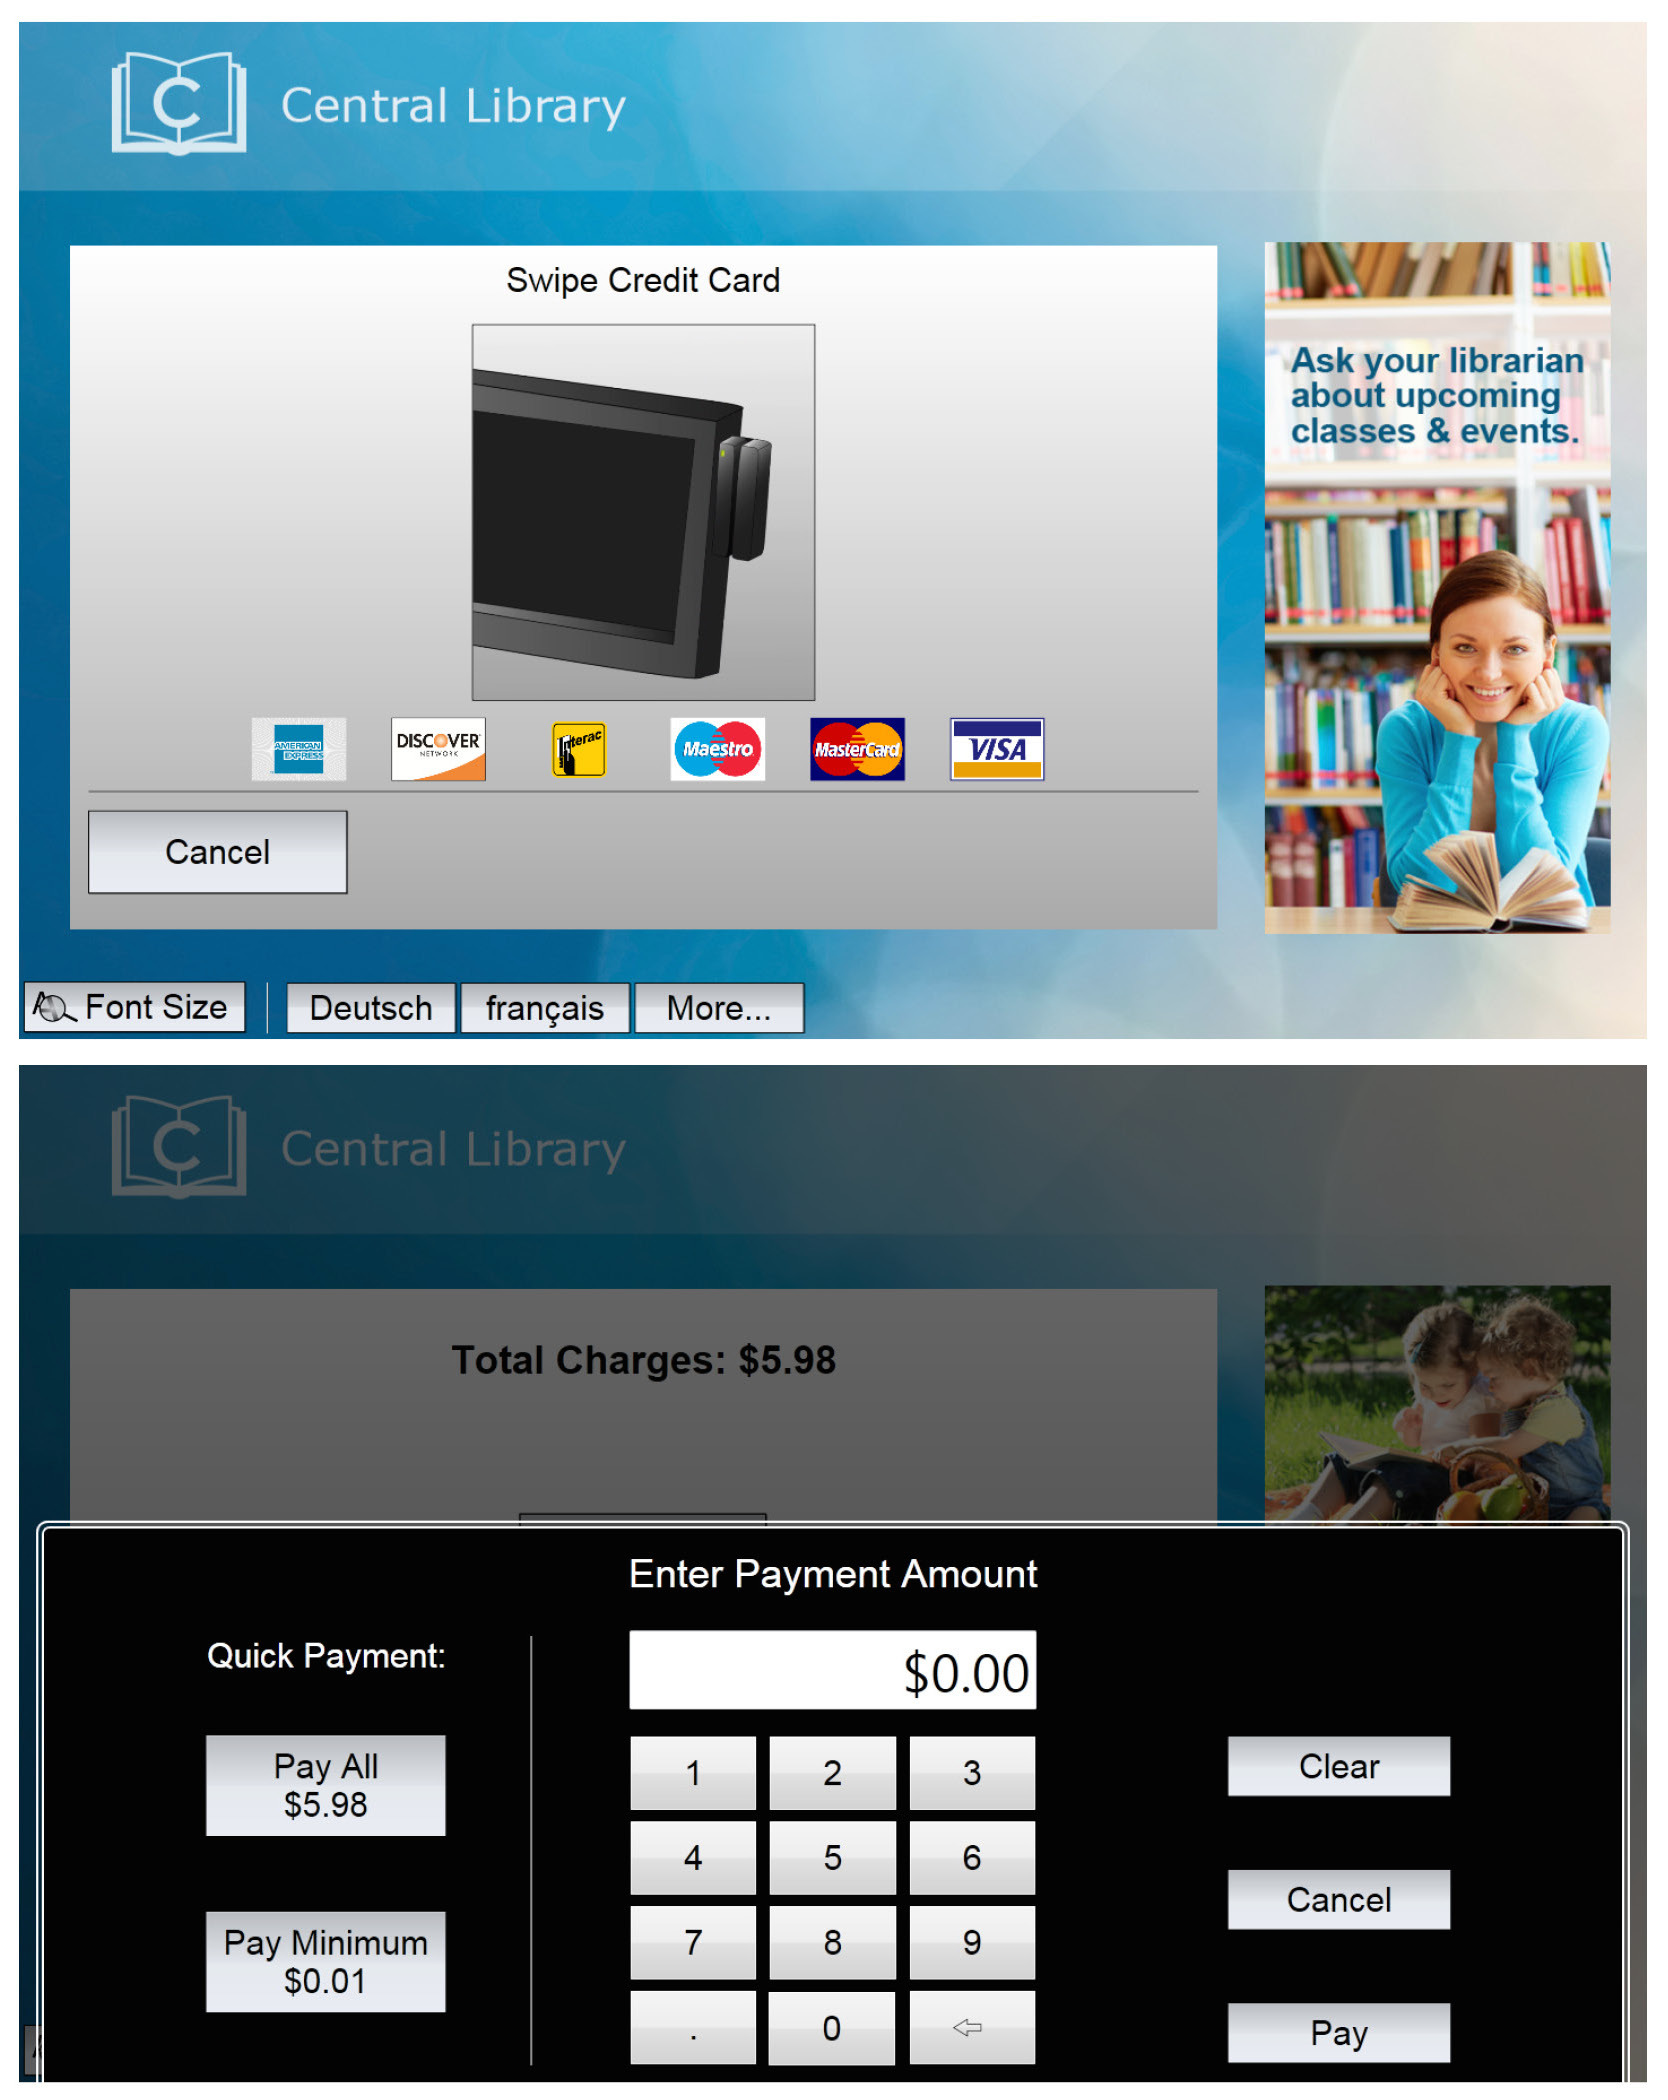 3M Library Systems has become Payment Application Data Security Standard (PA-DSS) validated for fines and fees collection, providing libraries and patrons added security at 3M SelfCheck kiosk. (Photo: Business Wire)